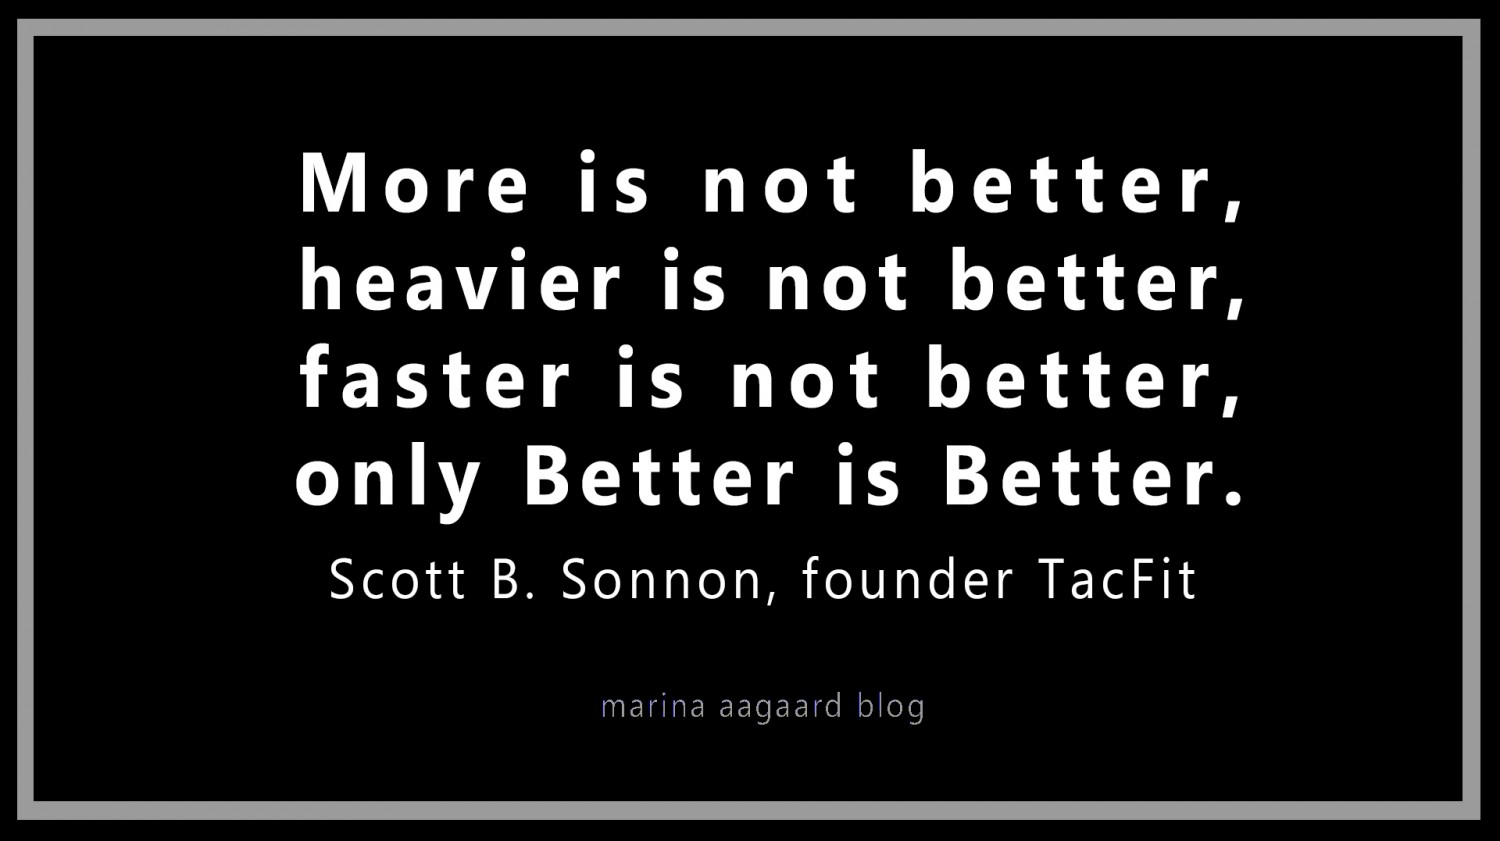 Motivation_better_is_better_Marina_Aagaard_blog